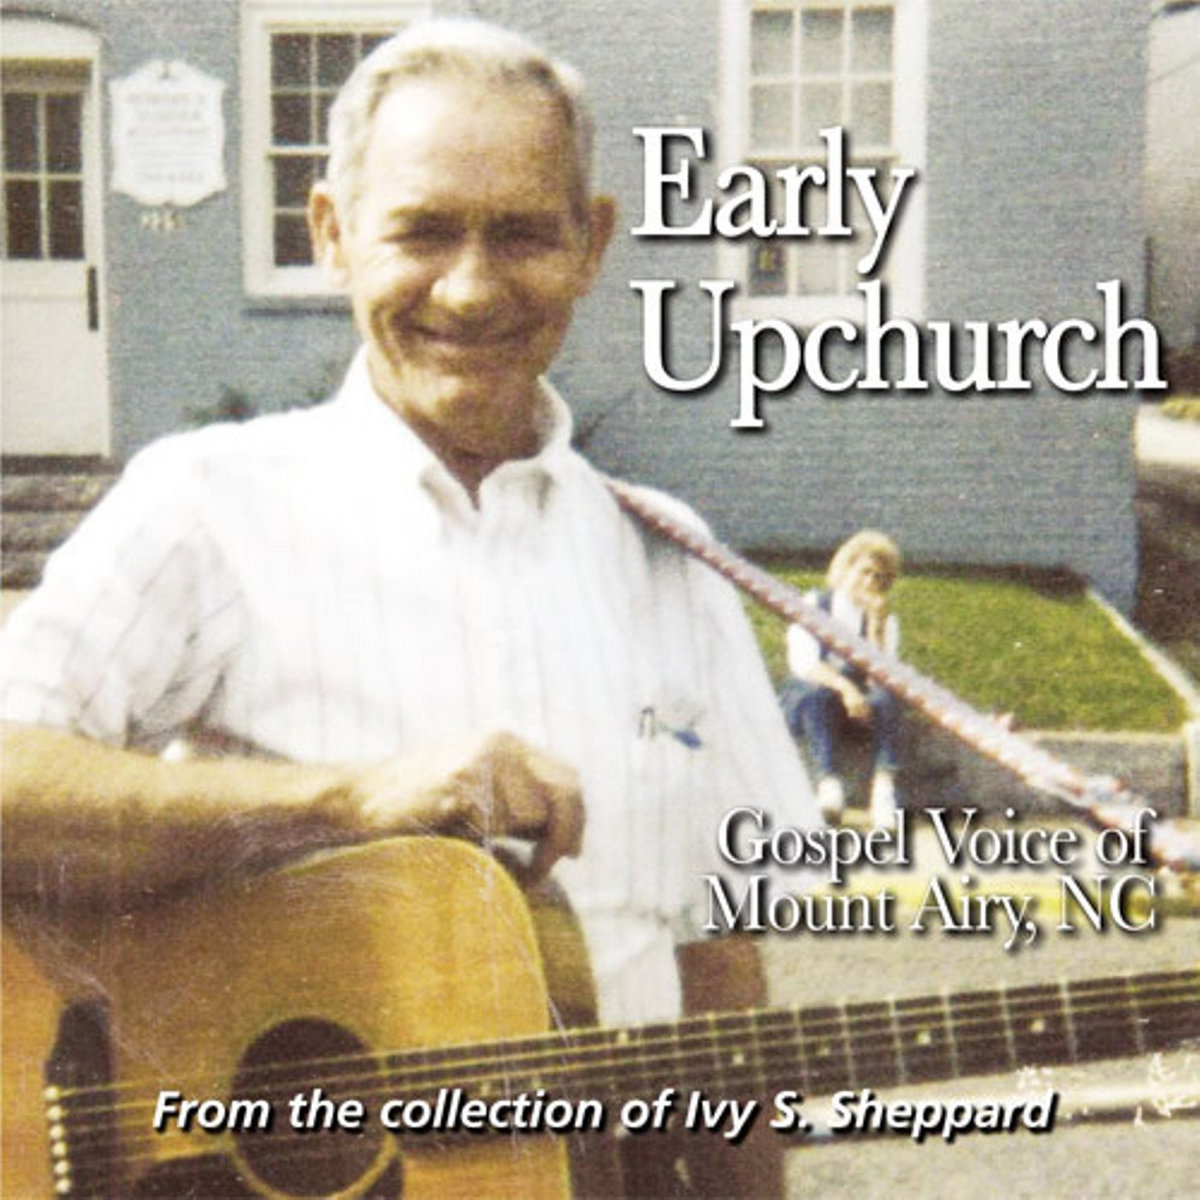 FRC 725 - Early Upchurch: Gospel Voice of Mount Airy,NC